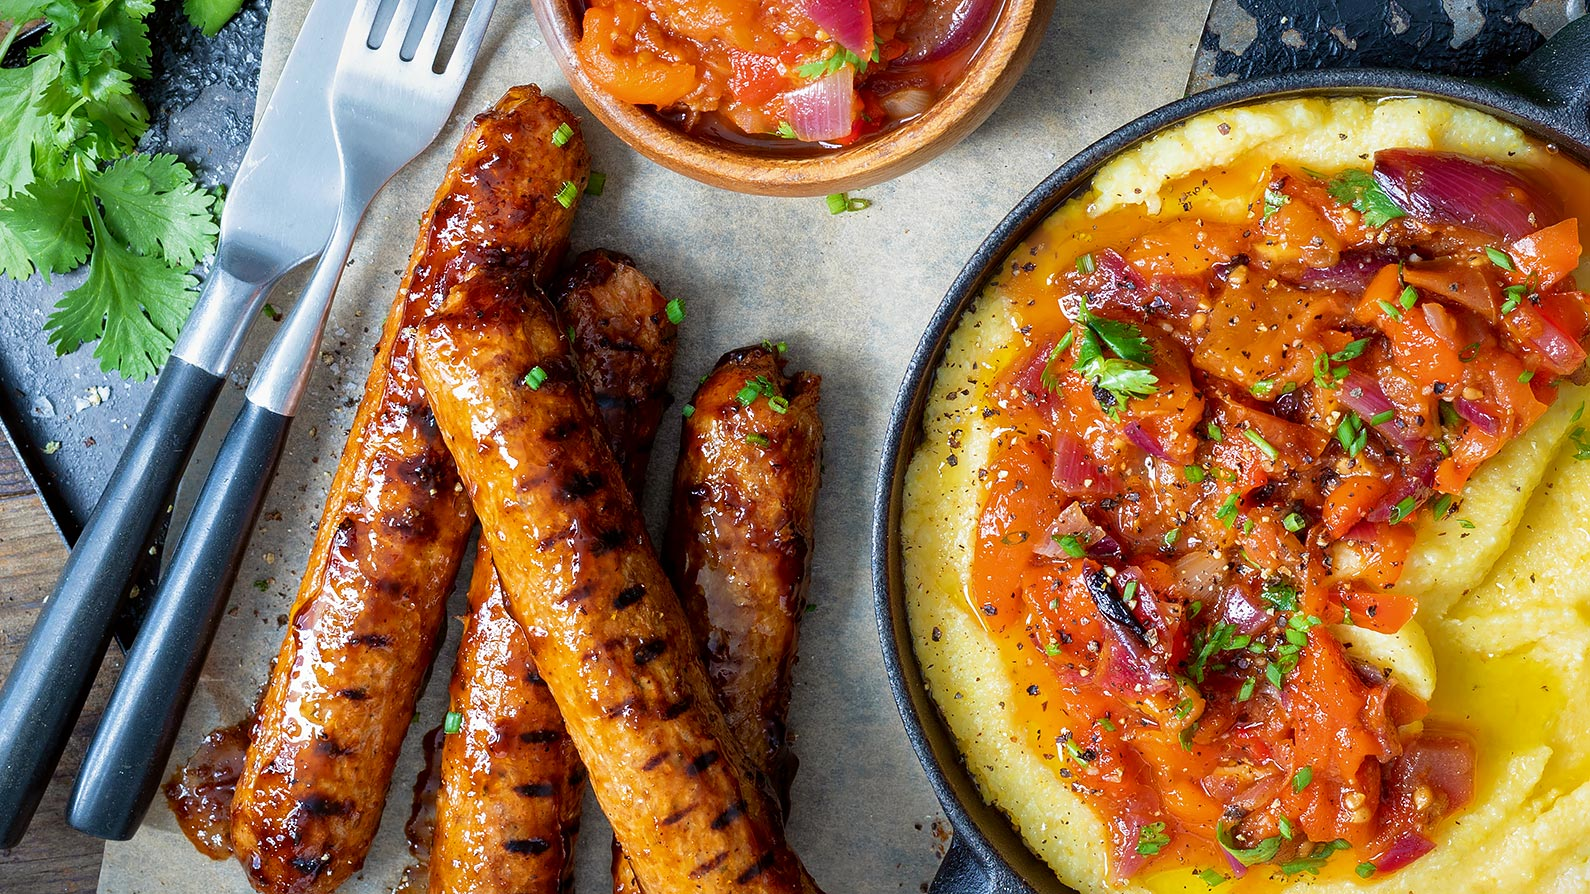 Boerewors with Roasted Red Pepper Salsa